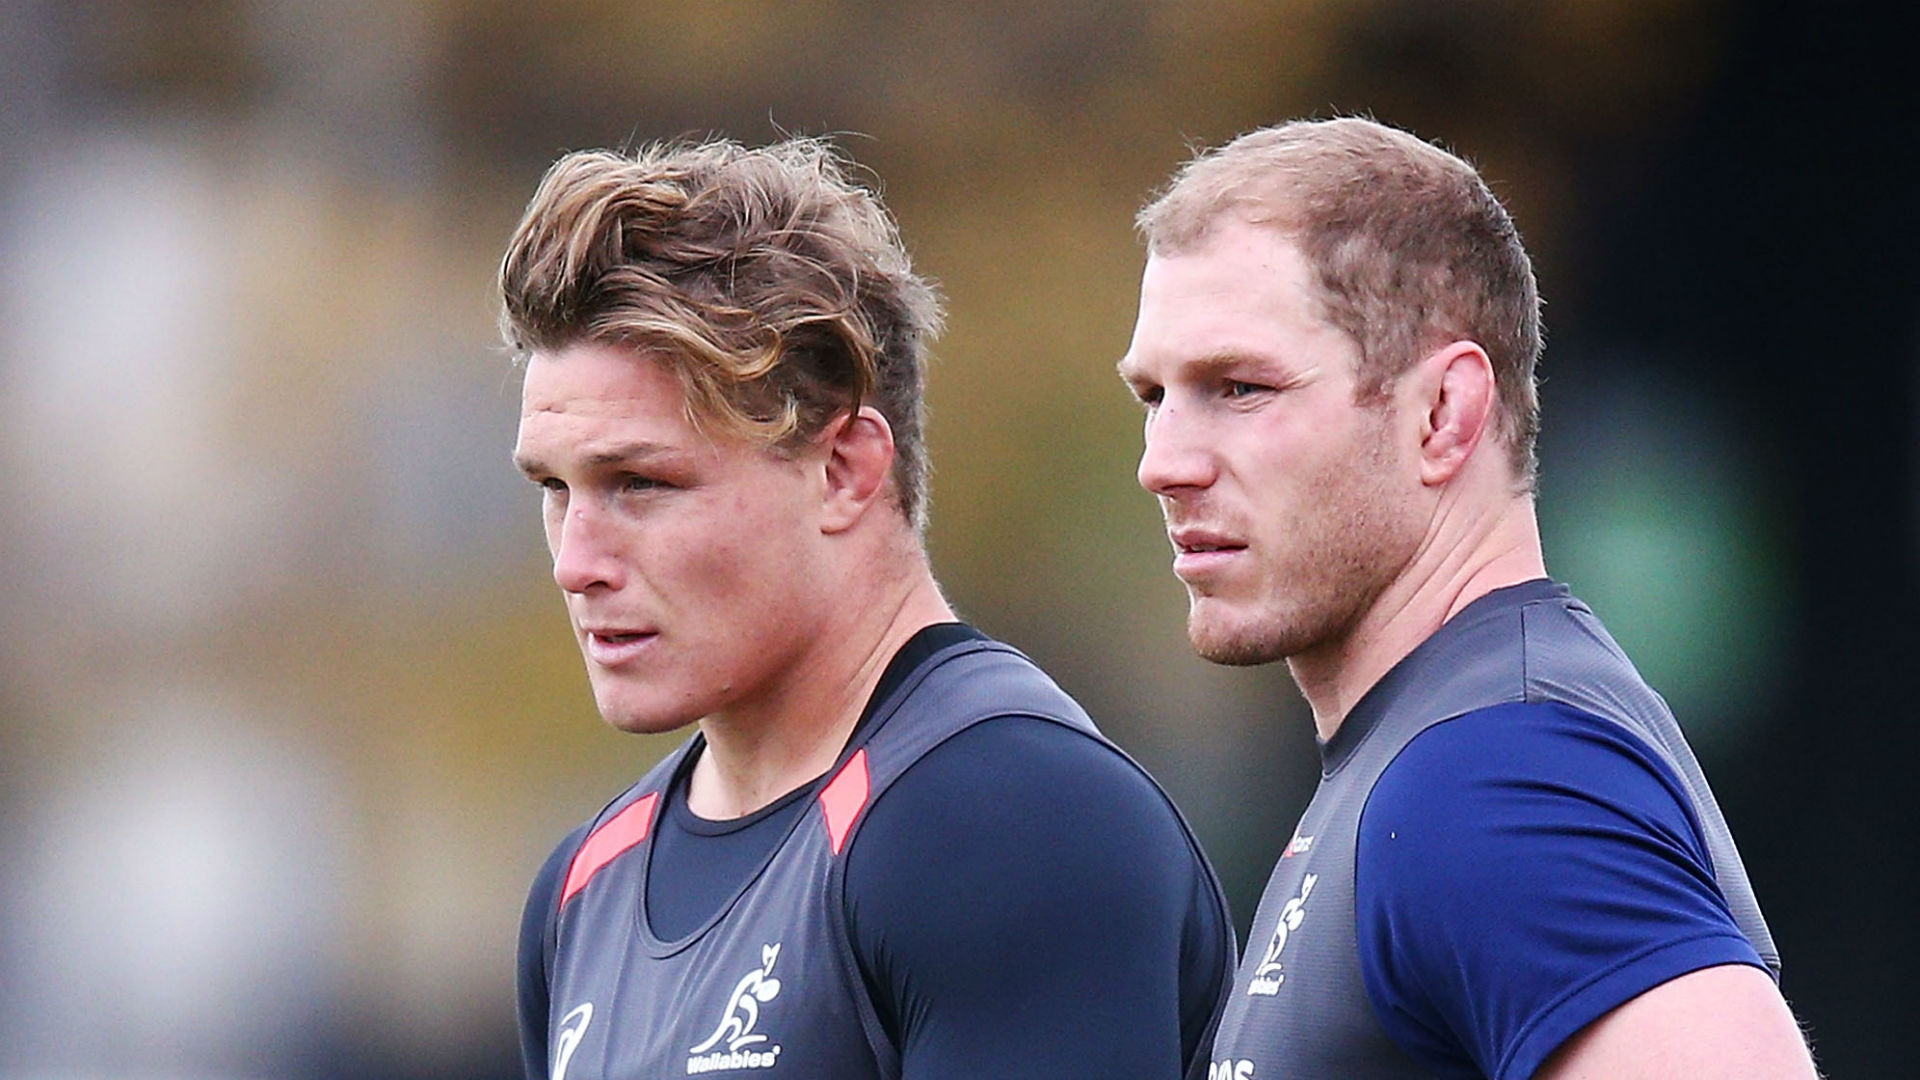 Hooper expecting 'dominant' Pocock at Rugby World Cup